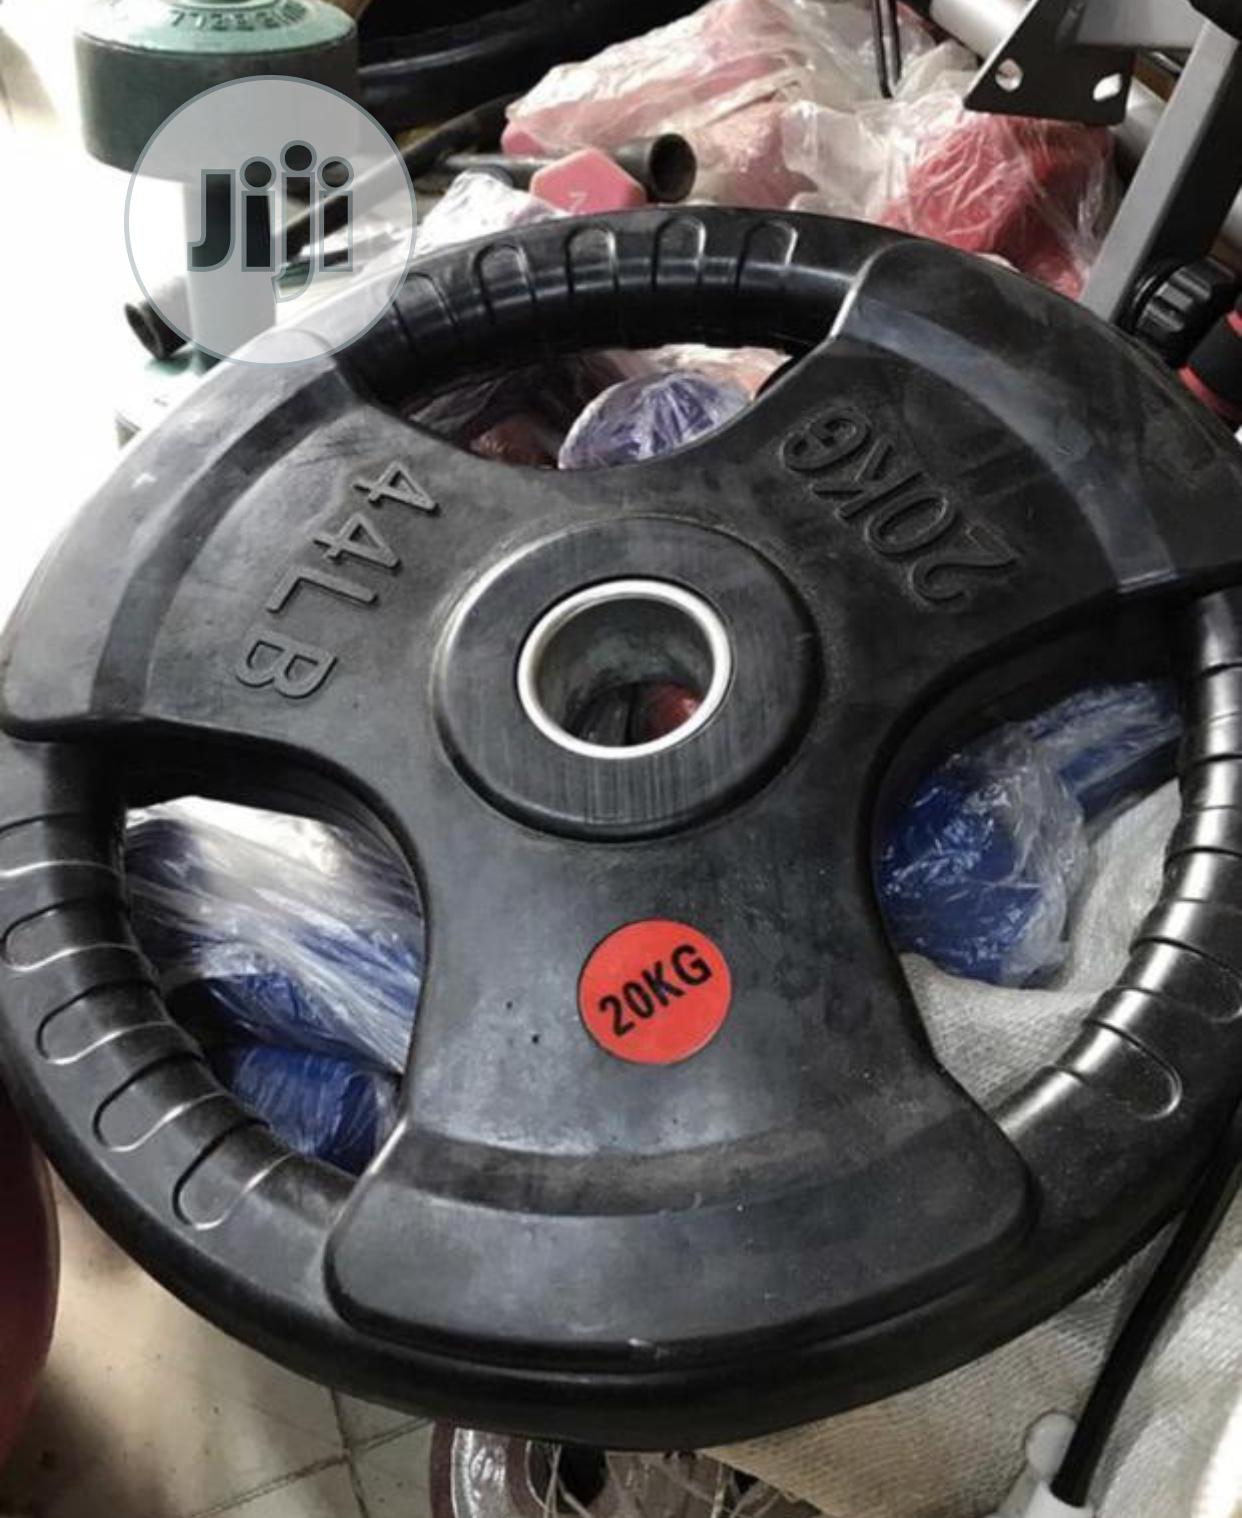 20kg Olympic Barbell Plate